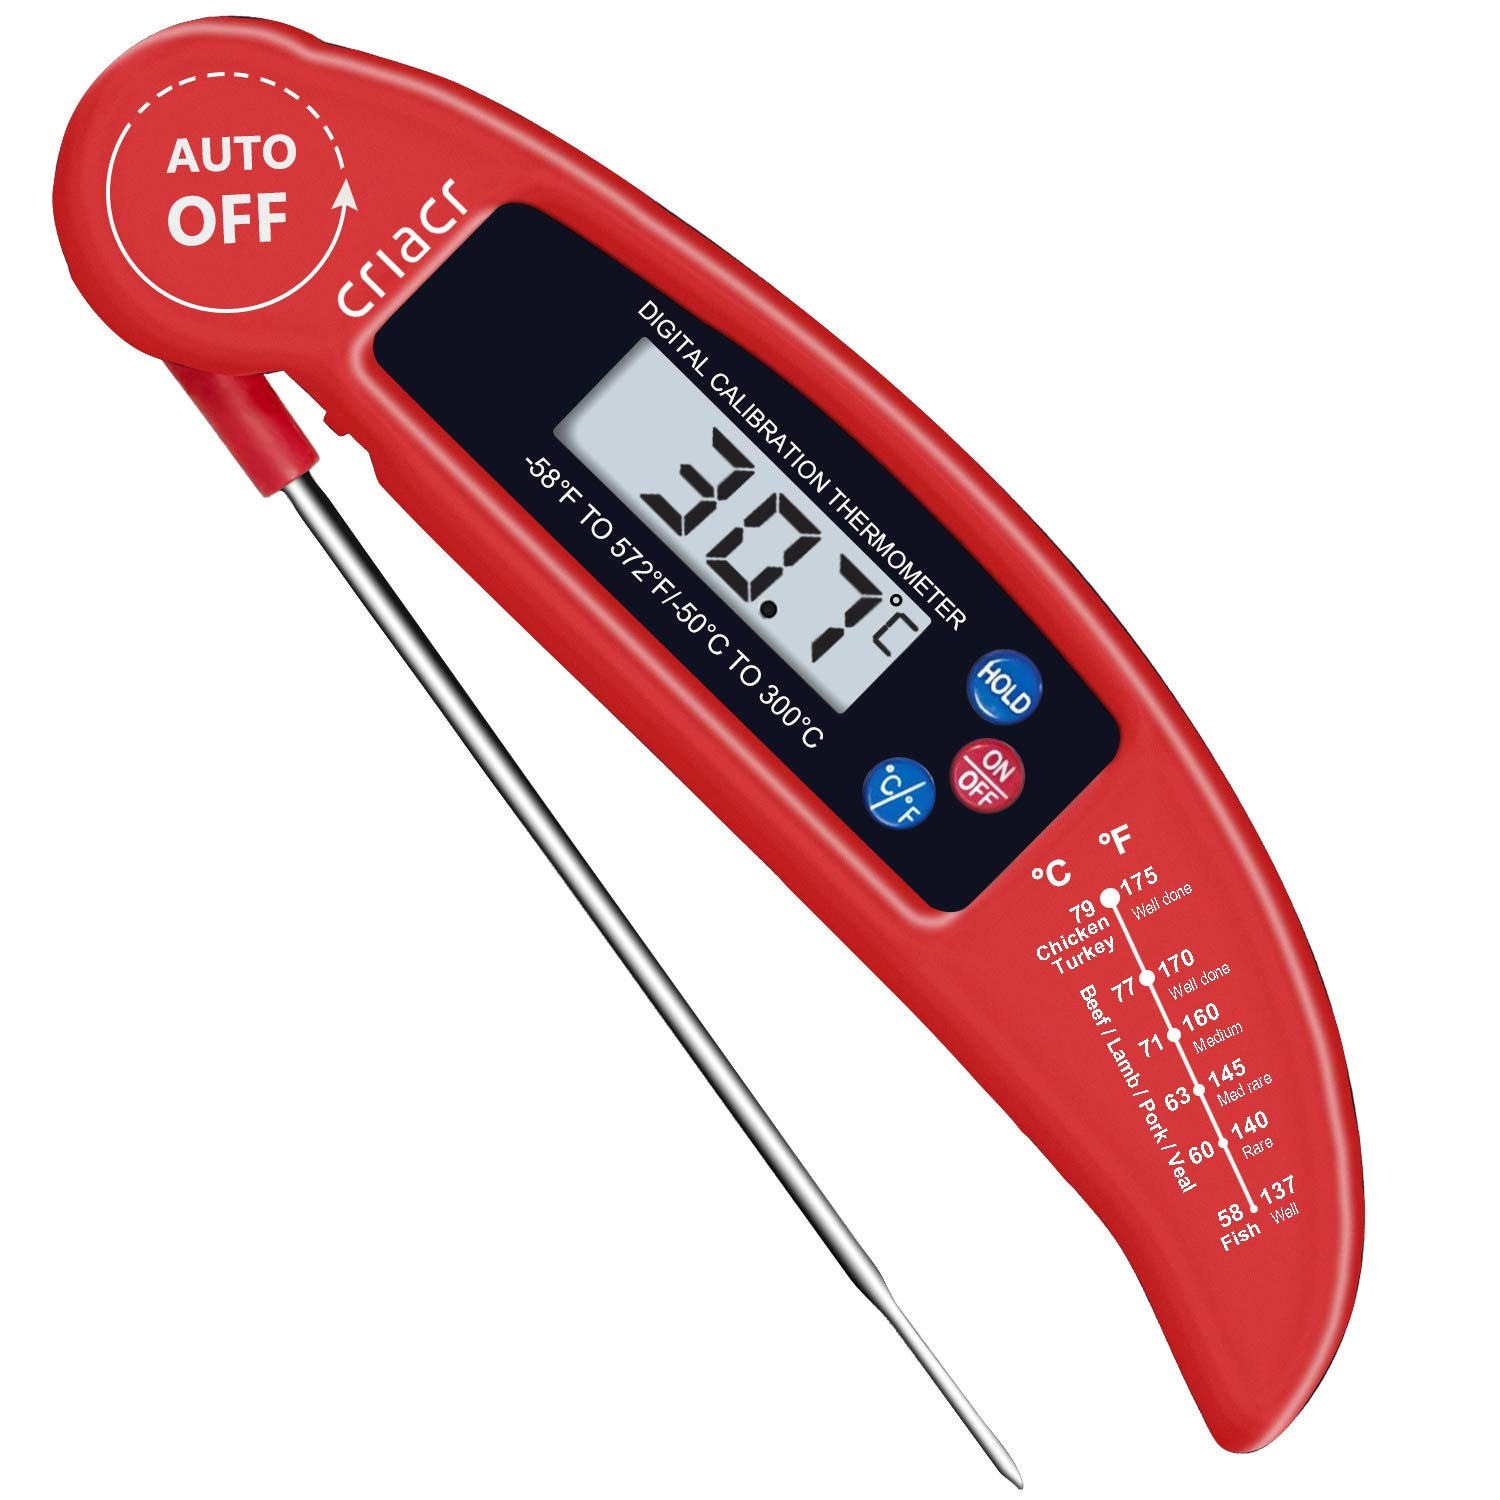 Criacr Food Thermometer, Digital Instant Read Candy/Meat Thermometer with Probe for Kitchen Cooking, BBQ, Poultry, Grill, Foldable, Fast & Auto On/Off, Black, Battery Not Included AMIR